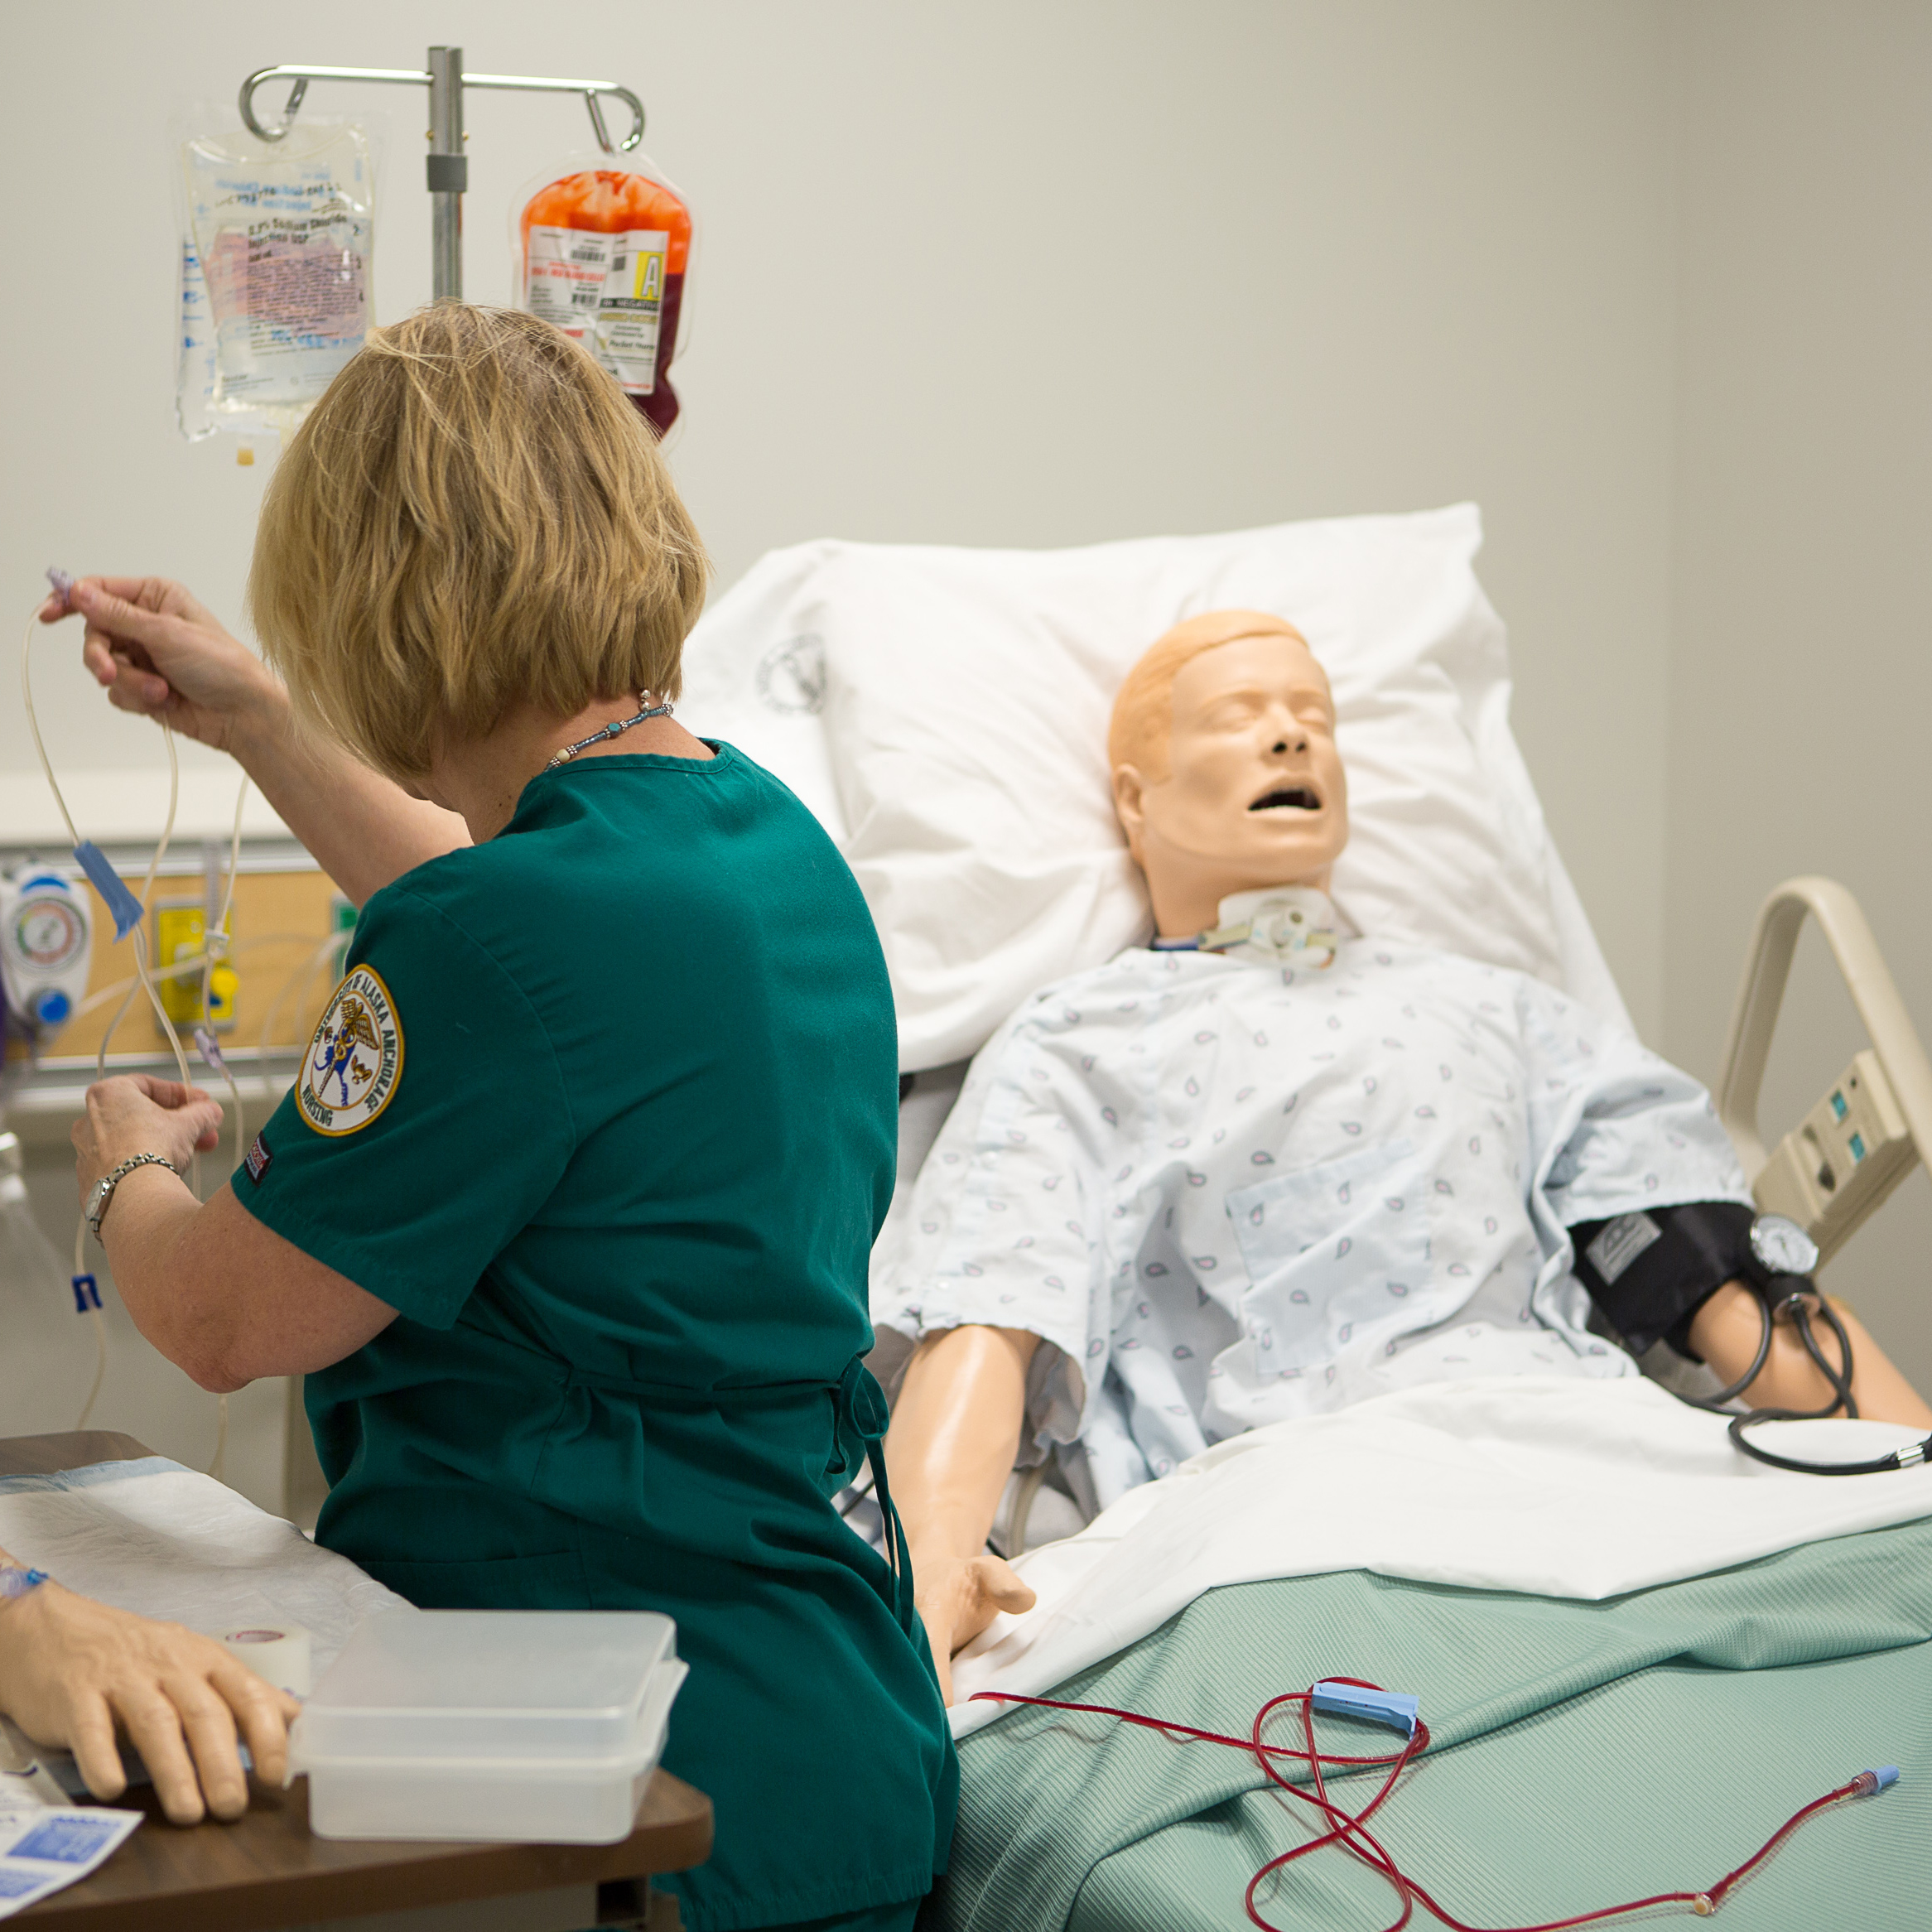 Woman checking saline bag for Sim patient.